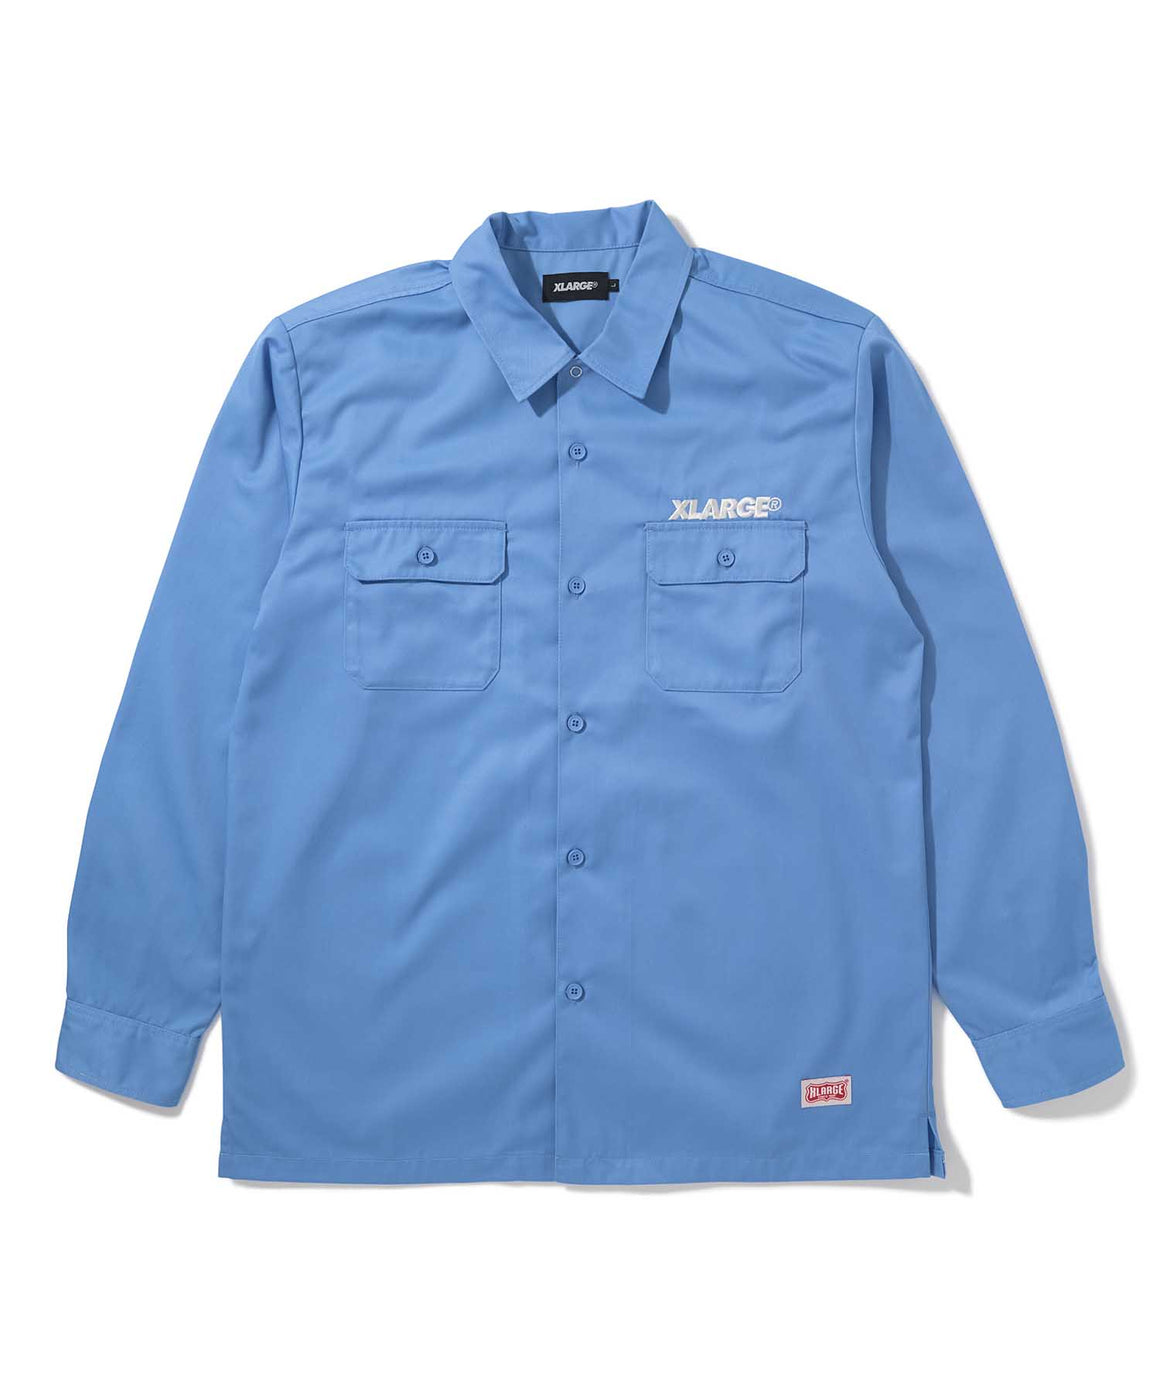 OG LS WORK SHIRT - X-Large Clothing